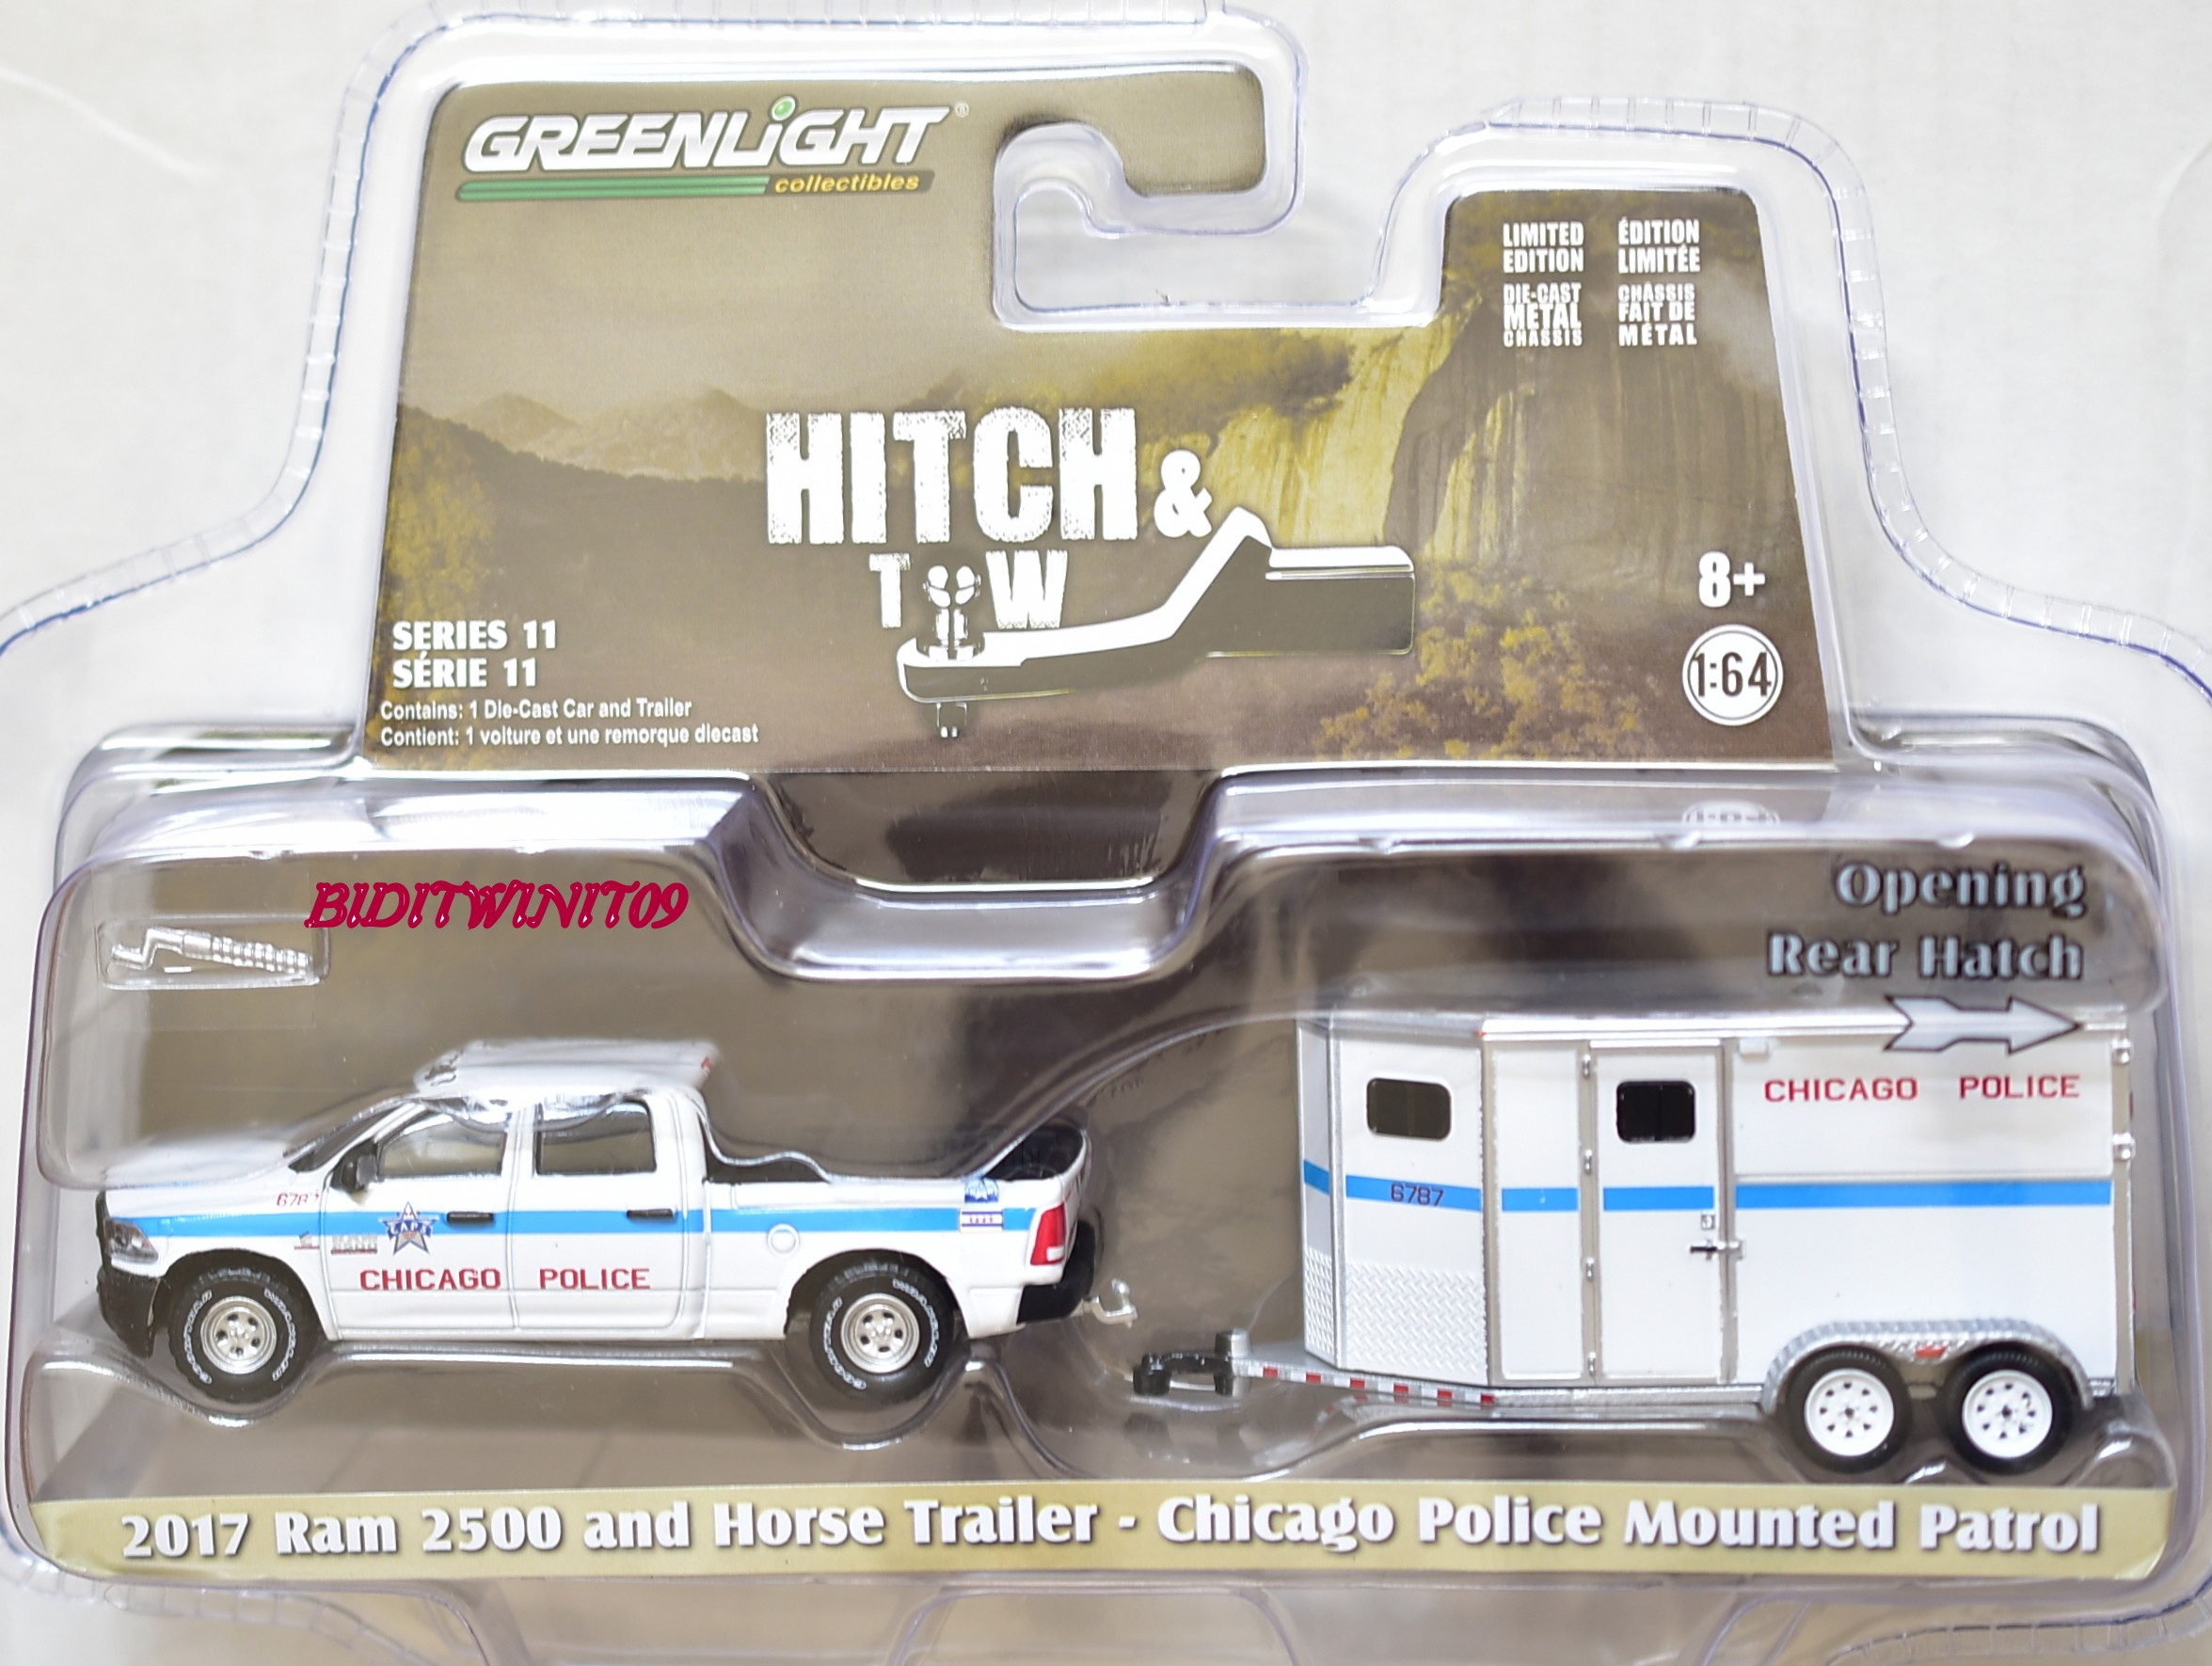 GREENLIGHT 2017 RAM 2500 AND HORSE TRAILER - CHICARO POLICE MOUNTED PATROL